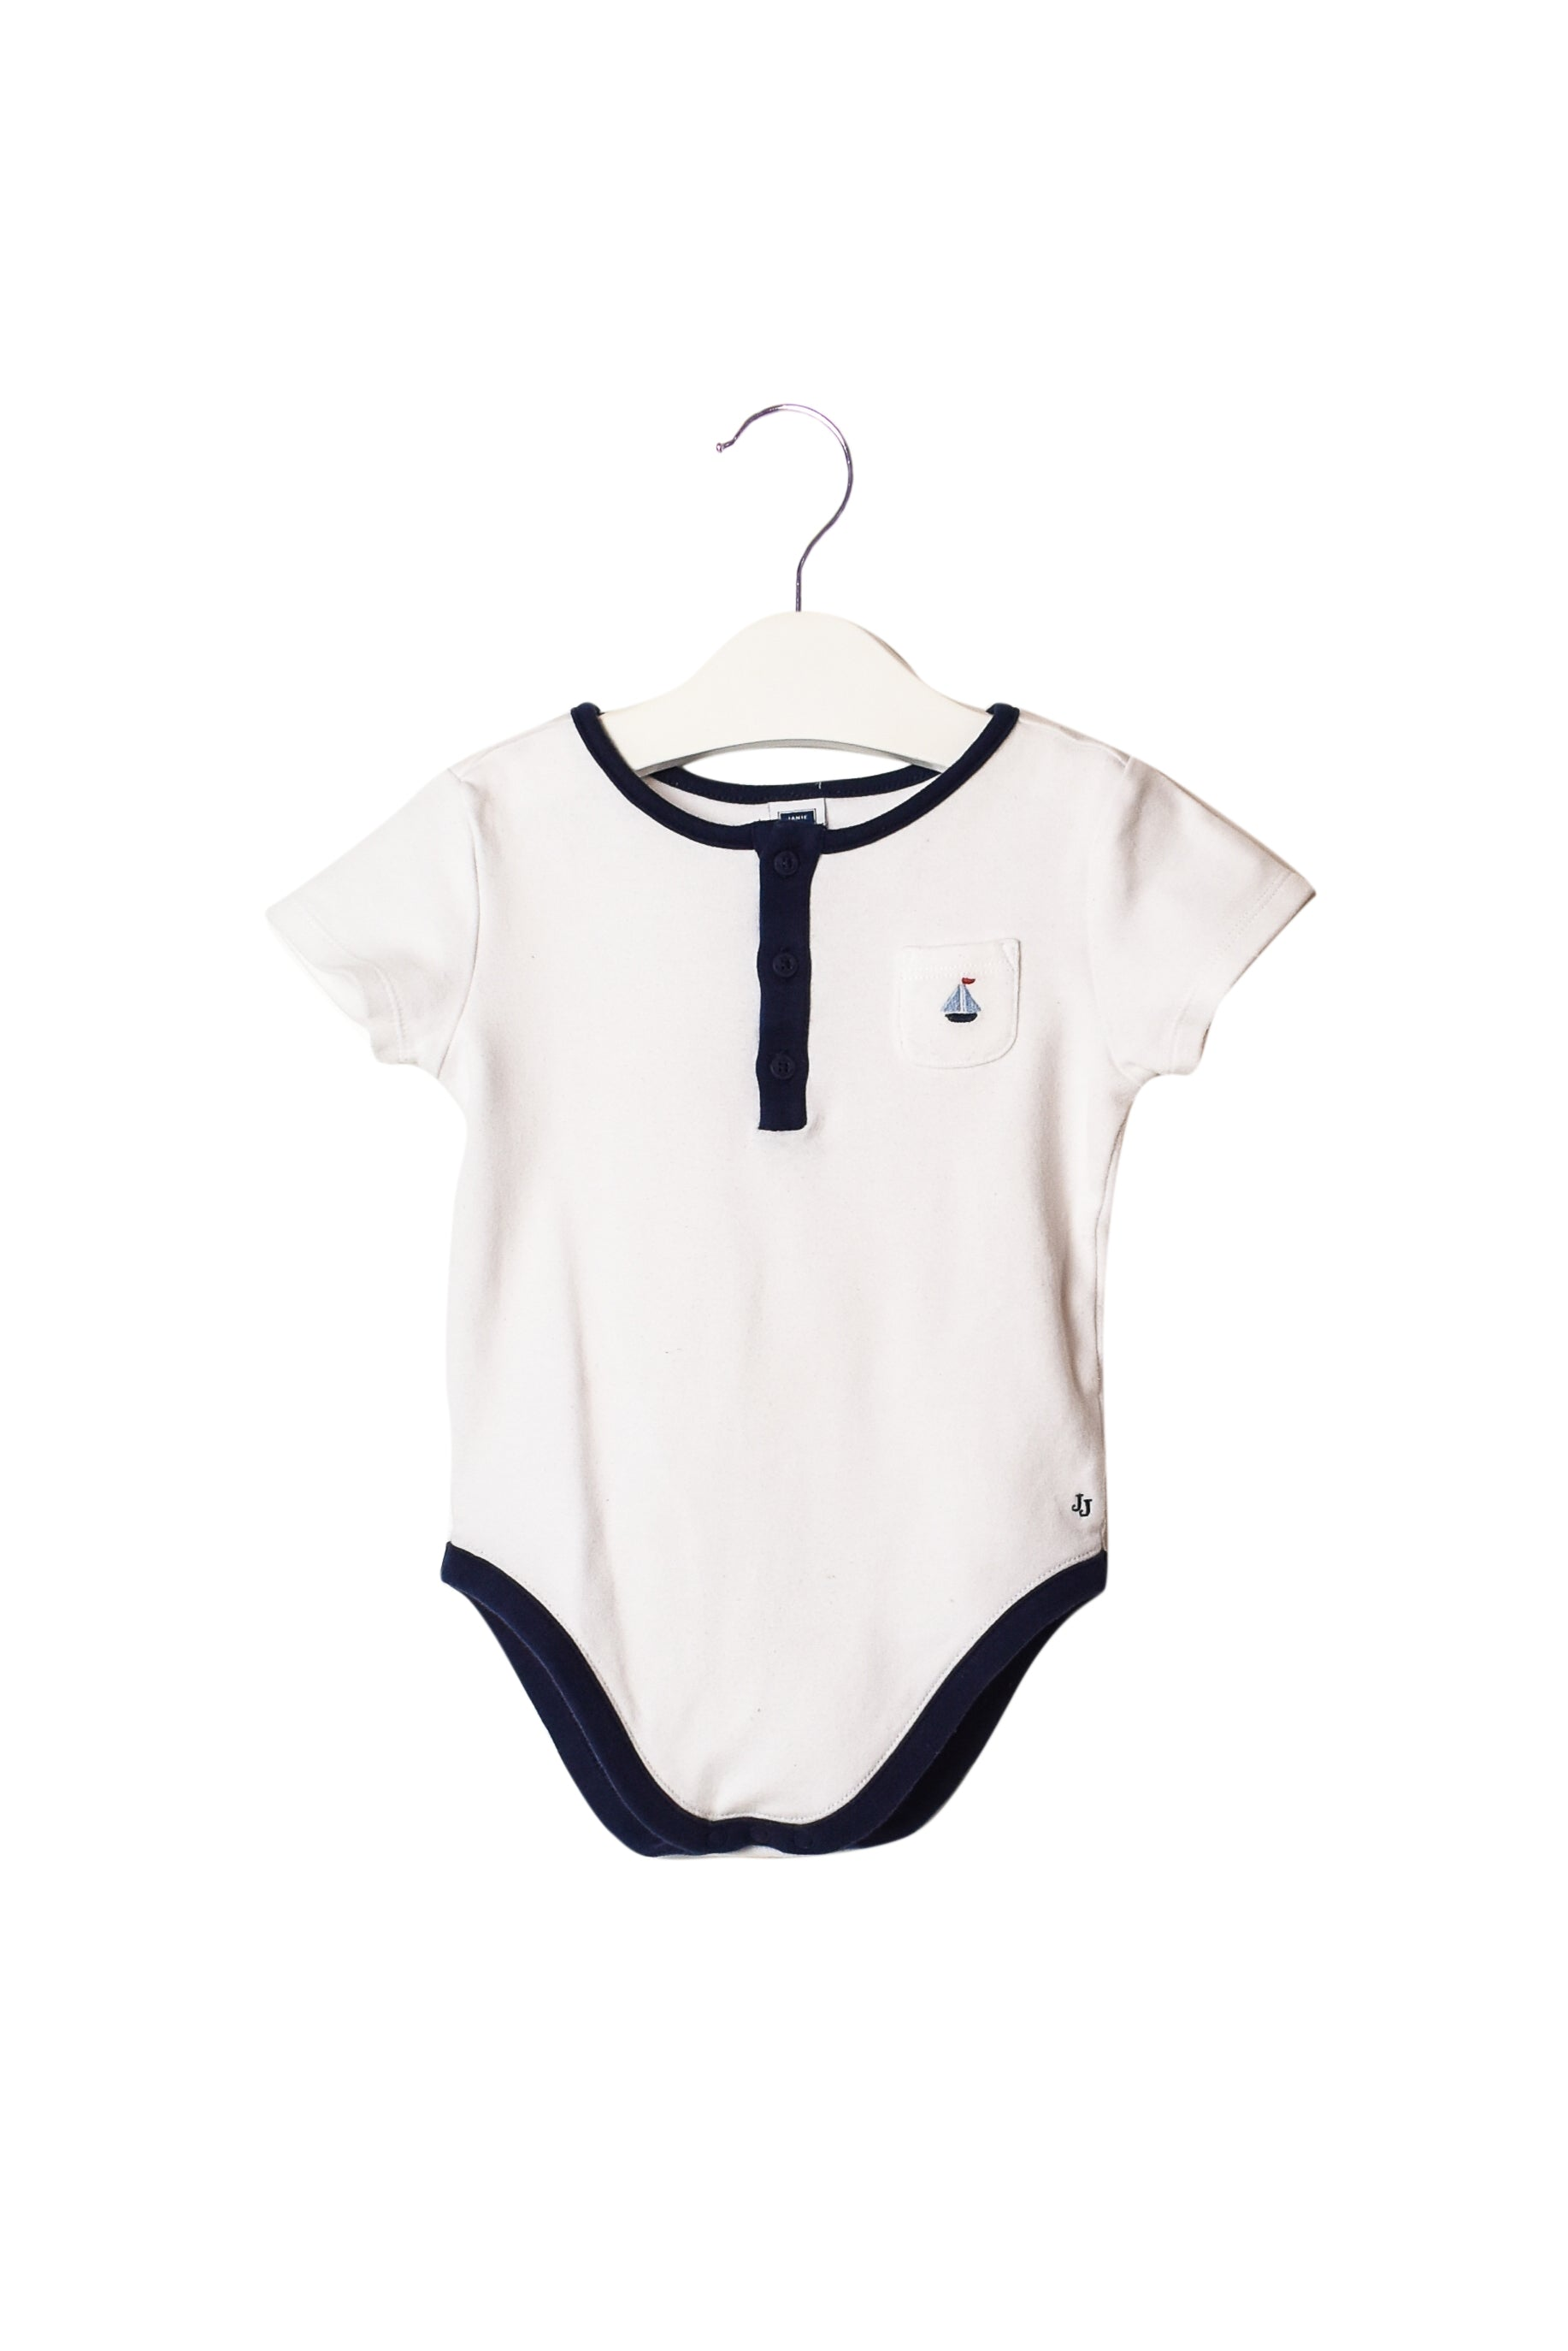 10007469 Janie & Jack Baby~ Bodysuit 6-12M at Retykle